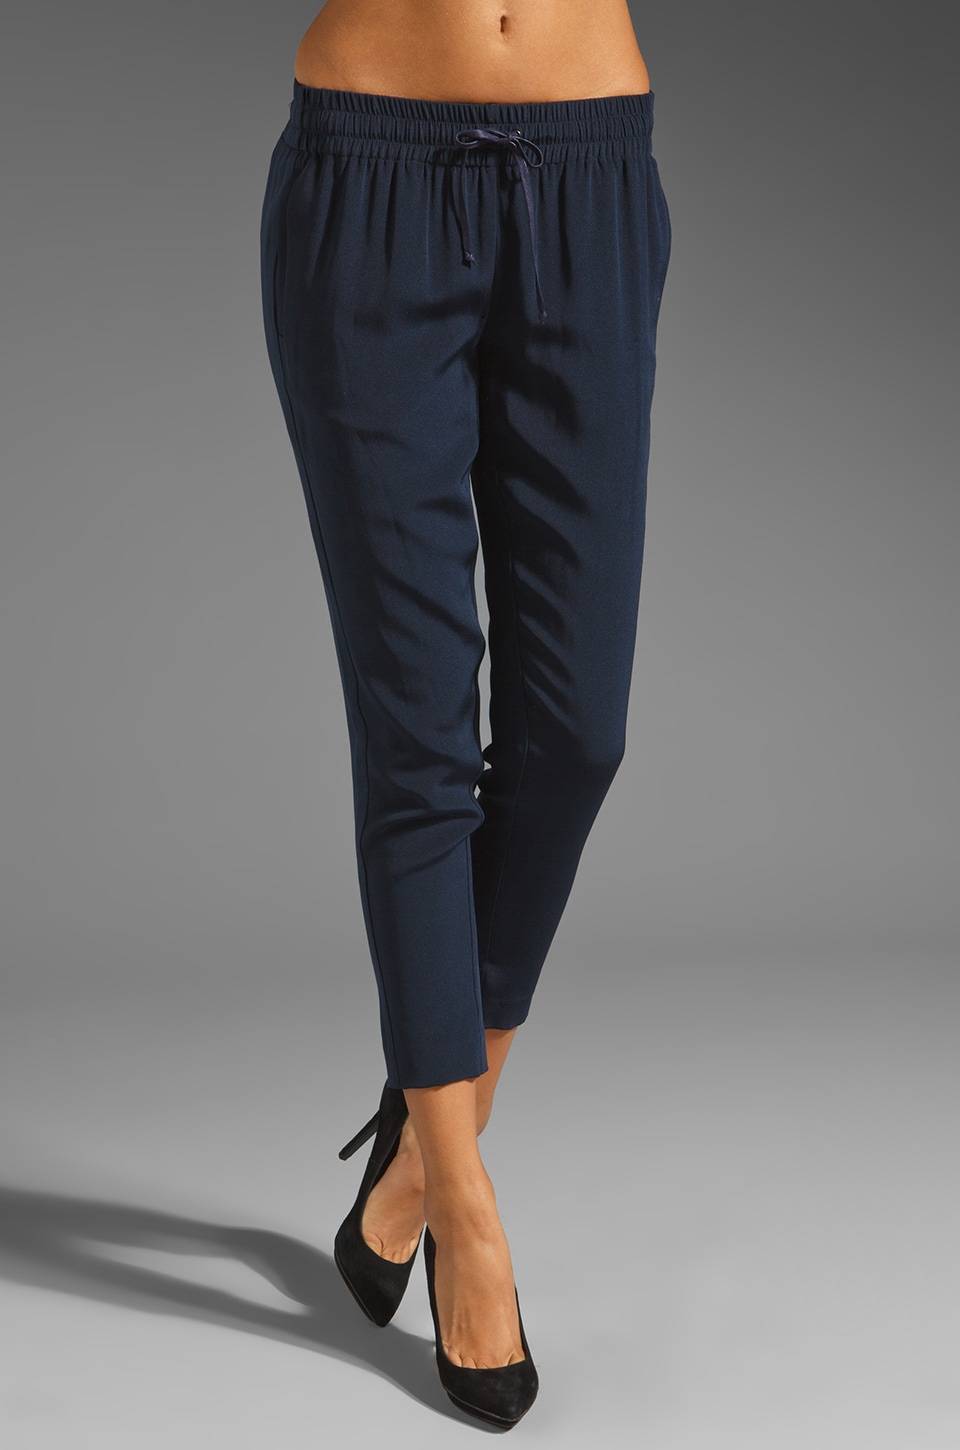 Elizabeth and James Jaidon Tux Pant en Marine